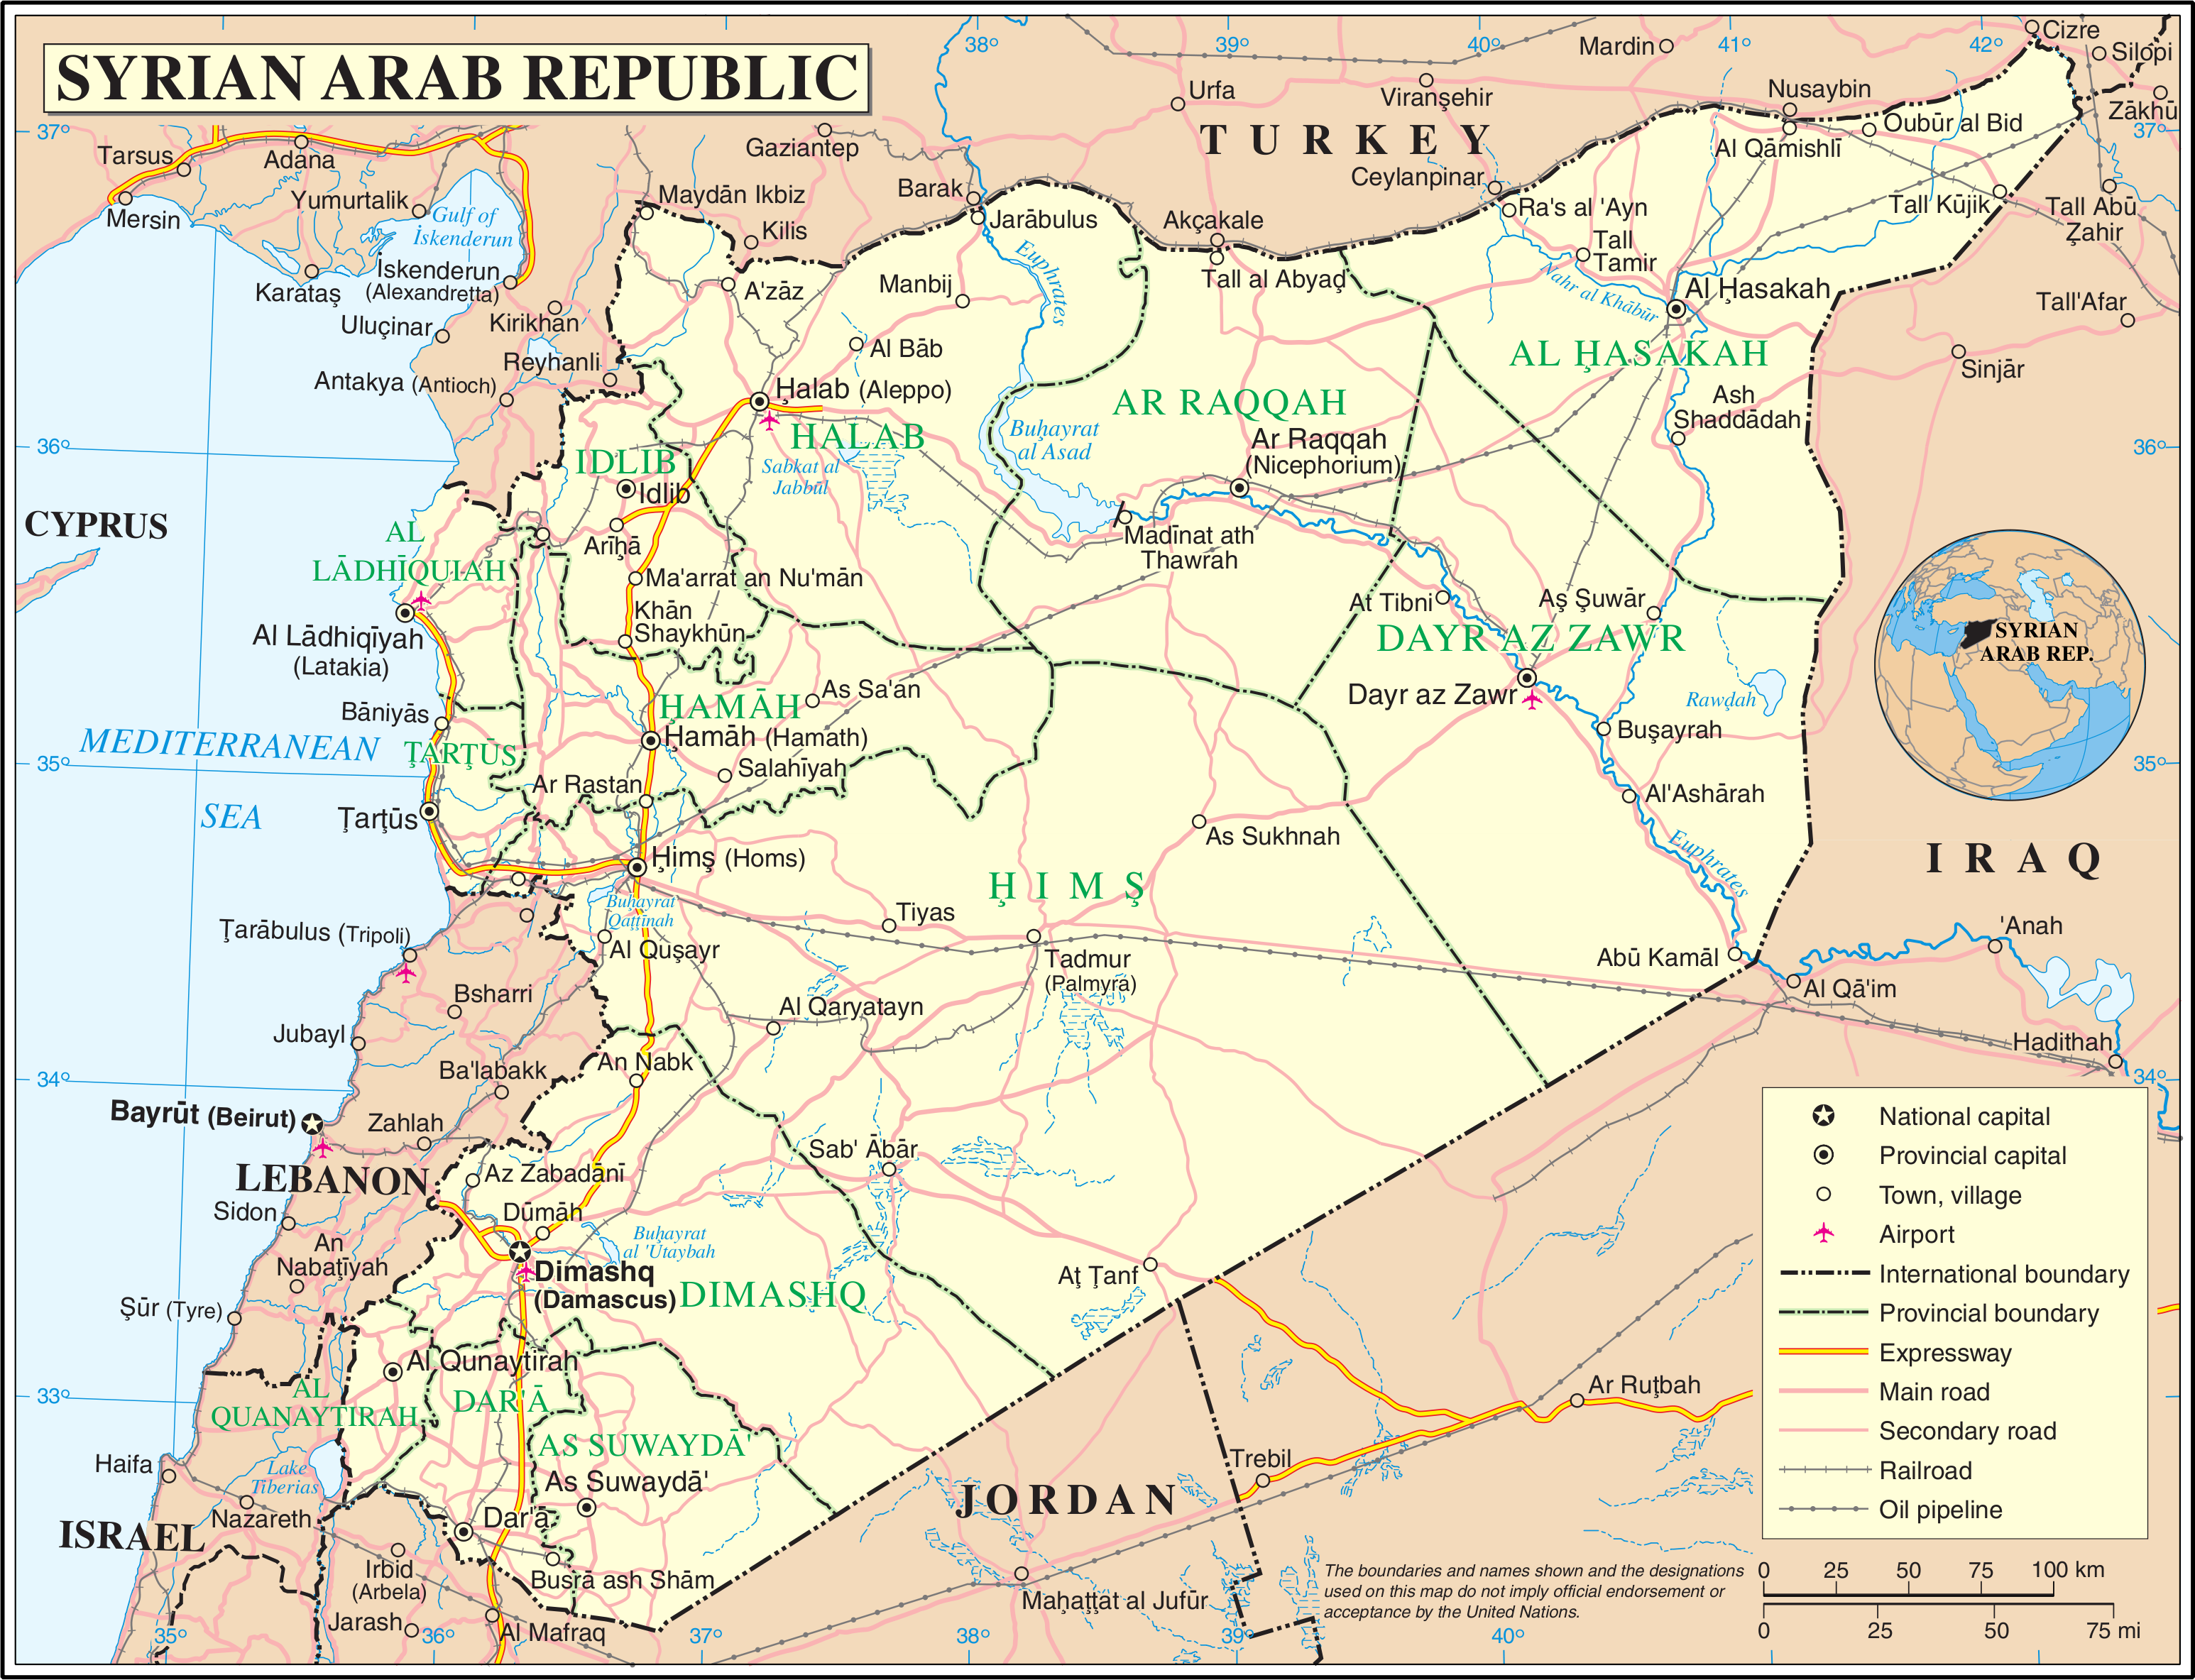 maps of israel with Why Did Nato Intervene In Libya But Is Not Getting Involved In Syria on Political Shades Map likewise Cidades Da Franca also Parma Italy Map also Jaw Dropping Gravity Defying Parkour Free Running additionally Why Did Nato Intervene In Libya But Is Not Getting Involved In Syria.